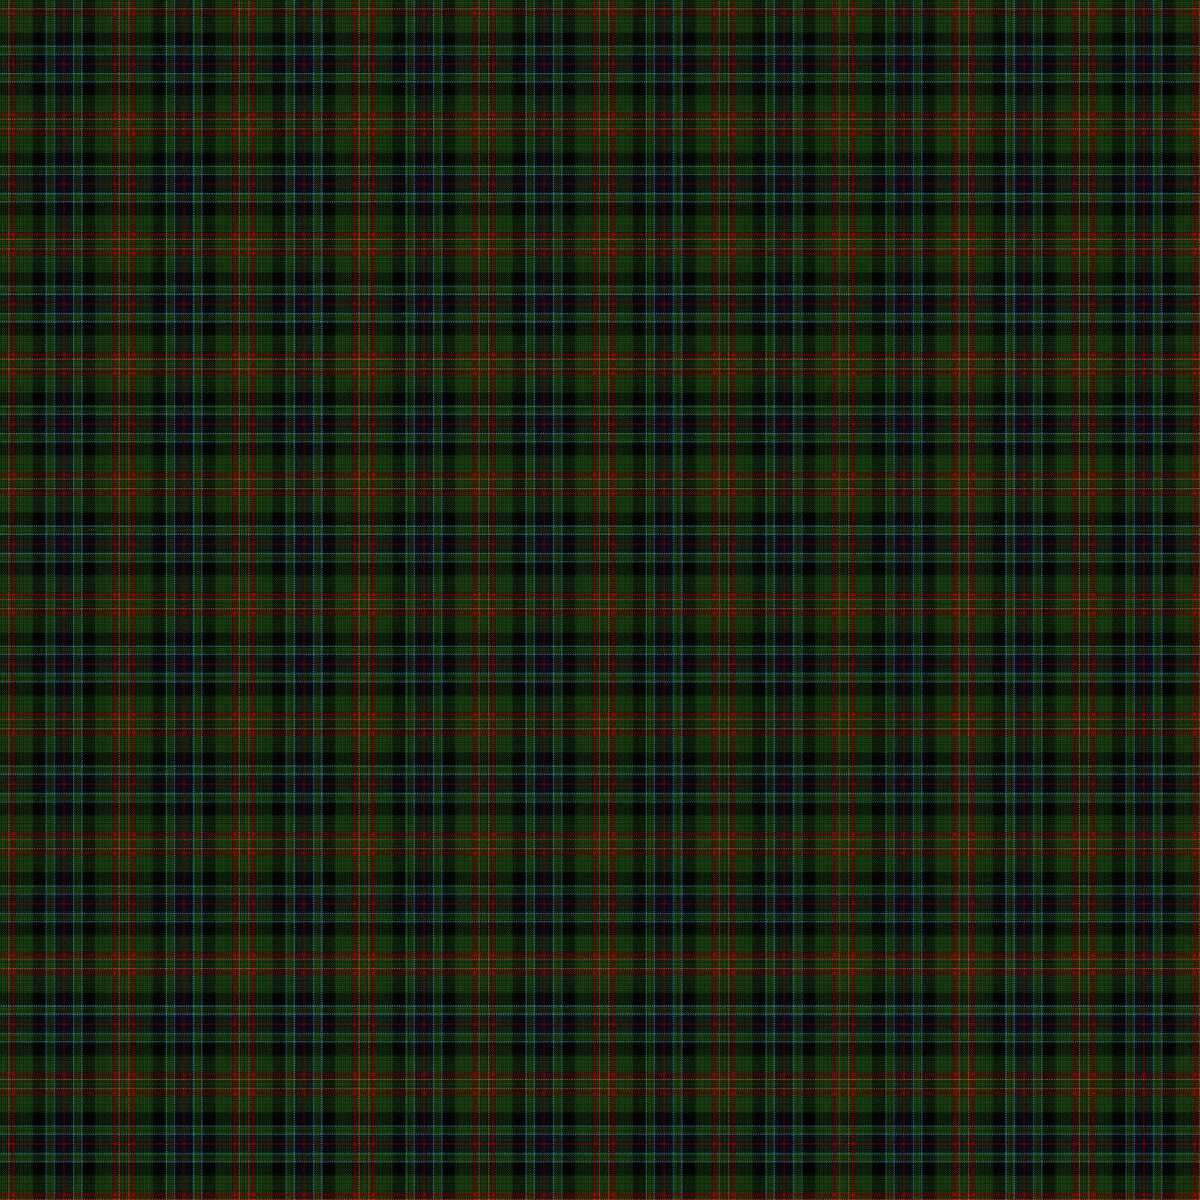 In 2015, the New York Caledonian Club recieved its first official tartan based on the design by Brian Wilton, a tartan designer and director for he Scottish Tartans Authority. It is one of two designed for the club.